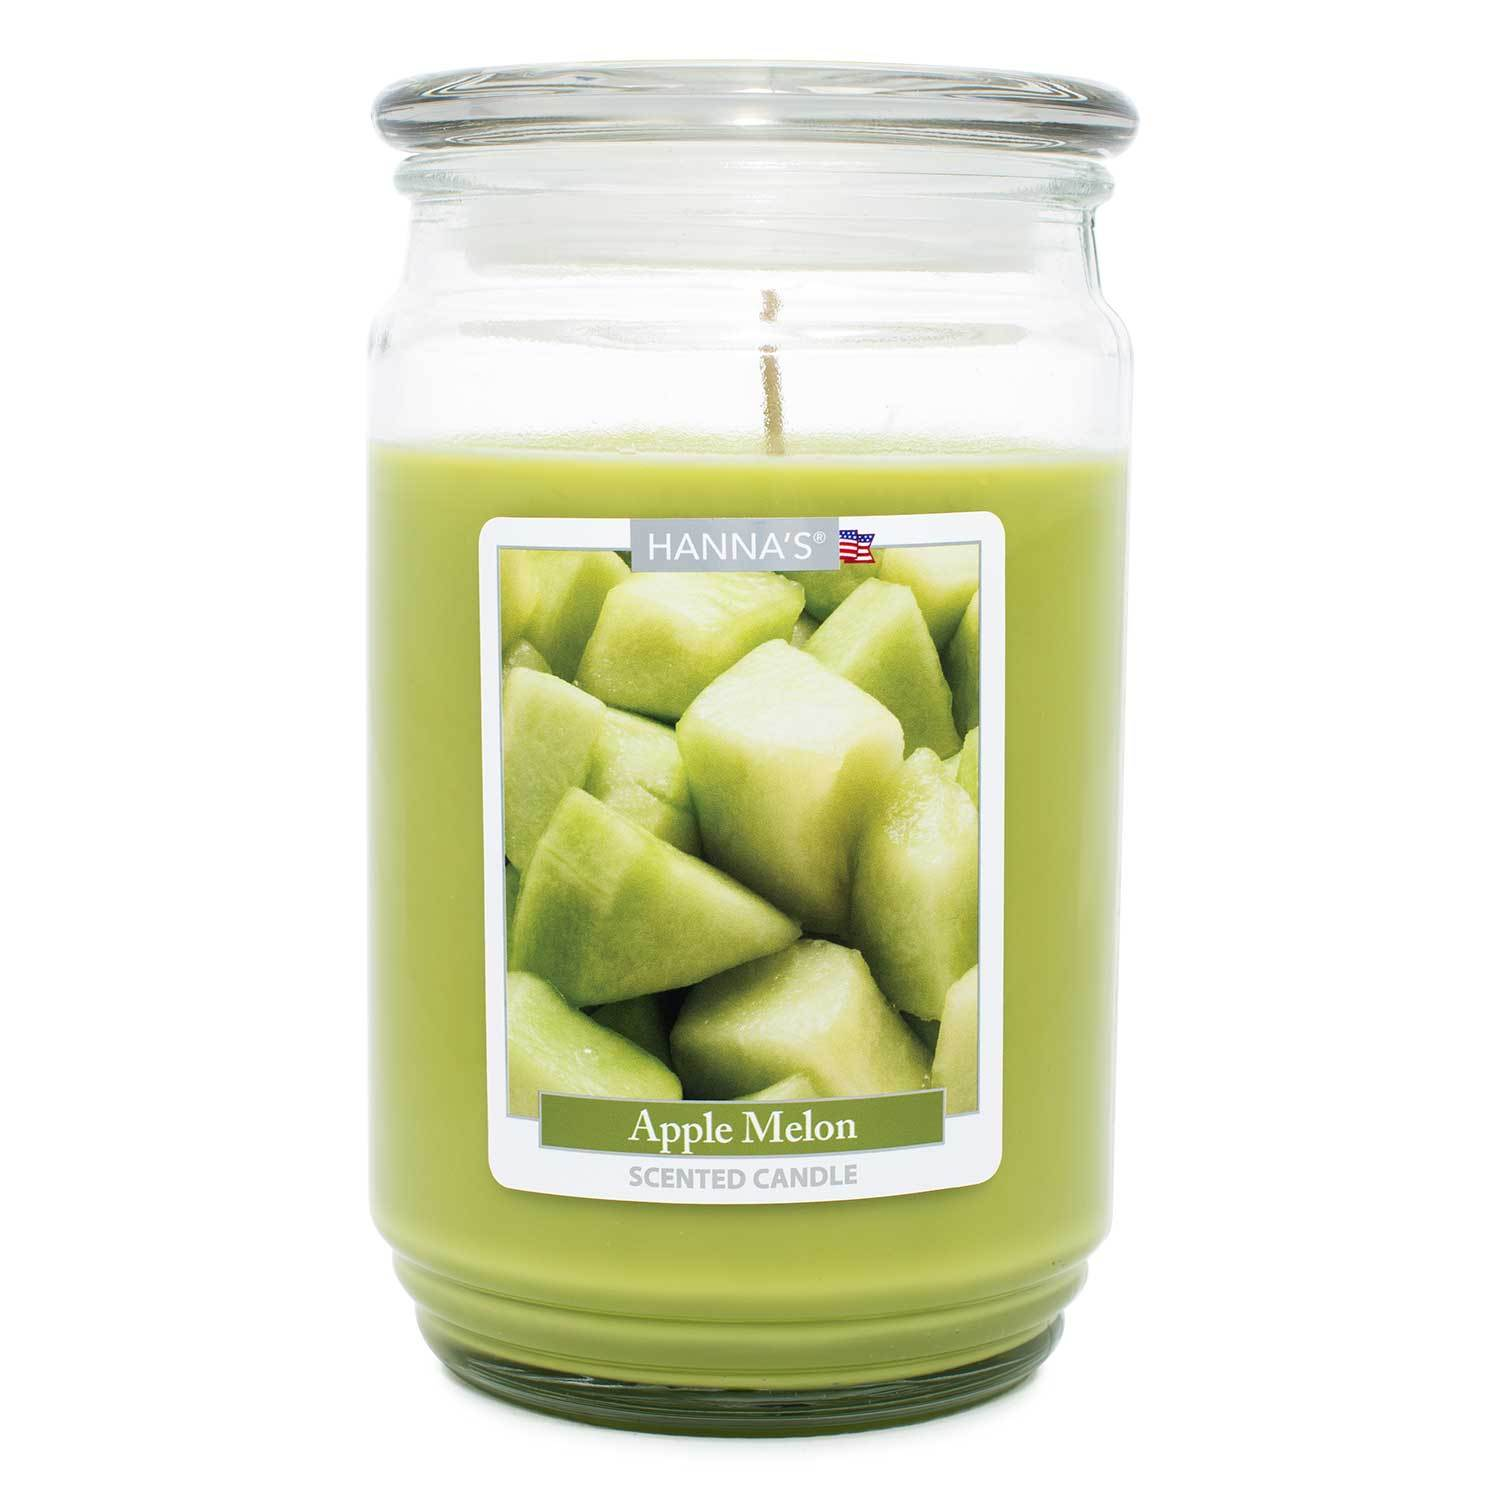 Apple Melon Scented Large Candle